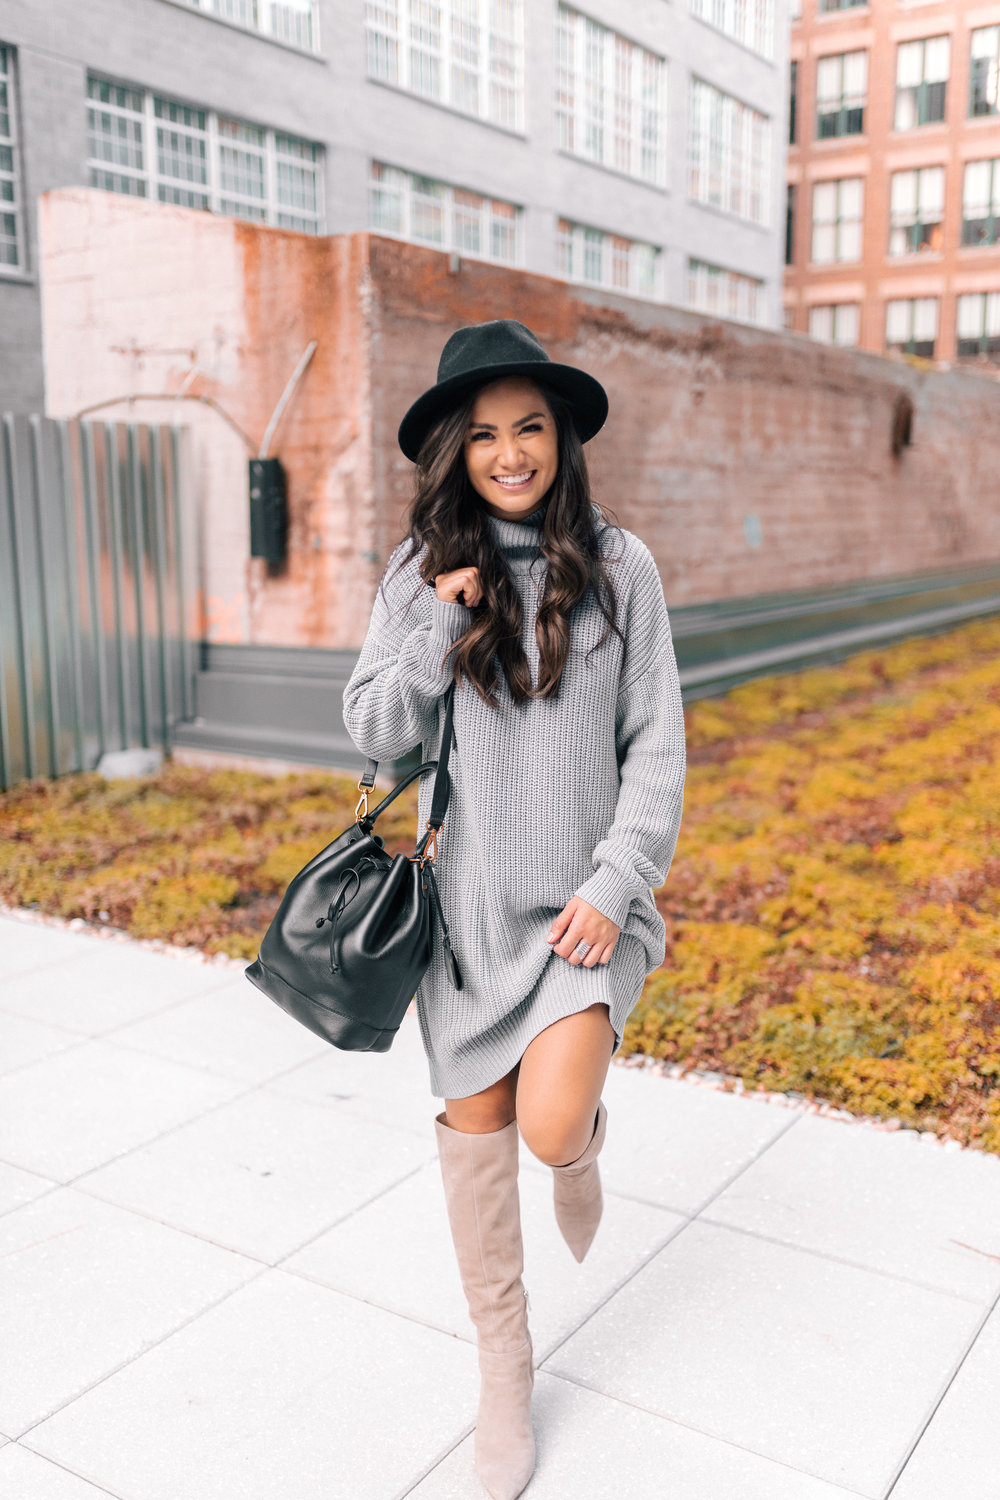 Caila Quinn Fall Fashion Gray Oversized Sweater Dress and high boots with  hat 1363c56dccb